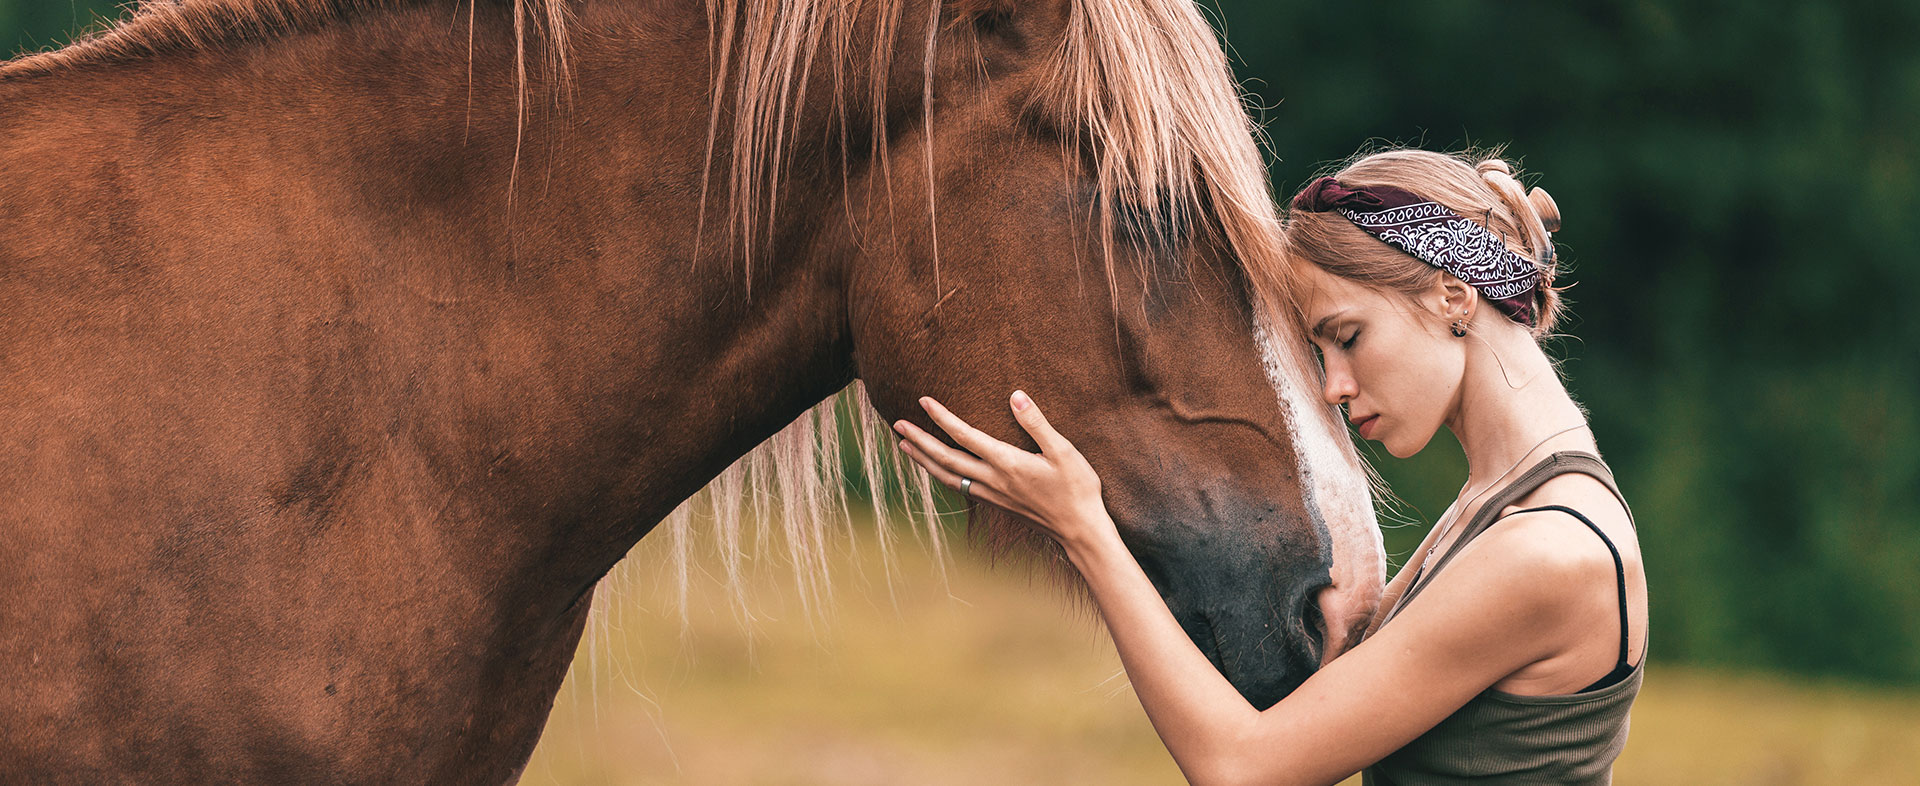 Communication intuitive animale Bas Rhin : Cheval